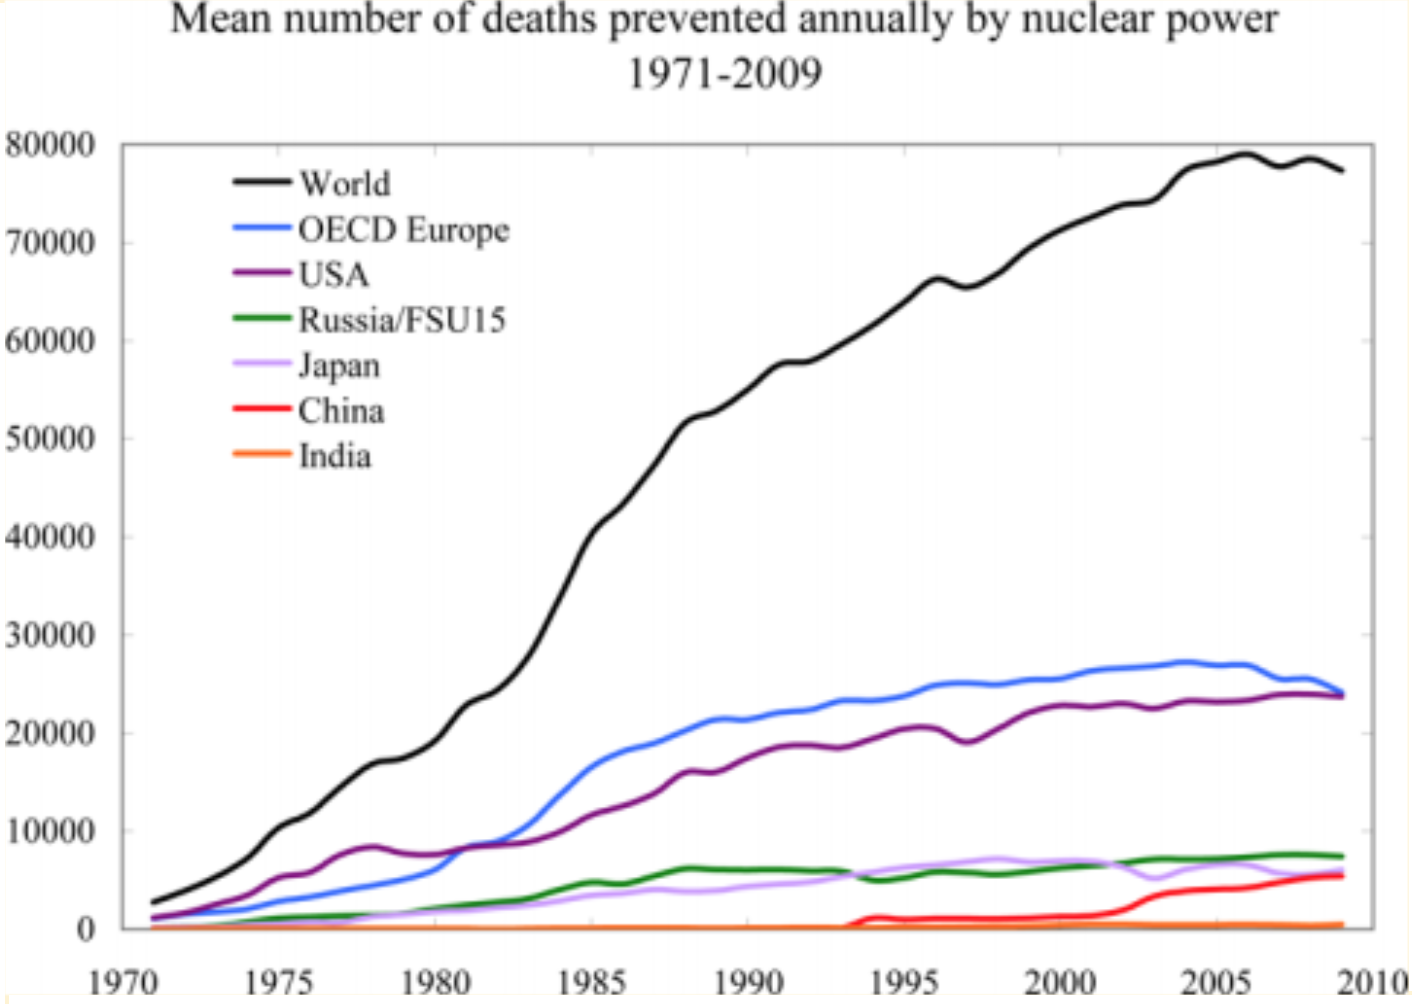 The 4th Generation Dr James Hansen Nuclear Power Has Contributed Energy Plant Diagram Team Applied Mortality Data Analysis To World As A Whole Oecd Europe And Five Most Polluting Countries Chinaus India Russia Japan